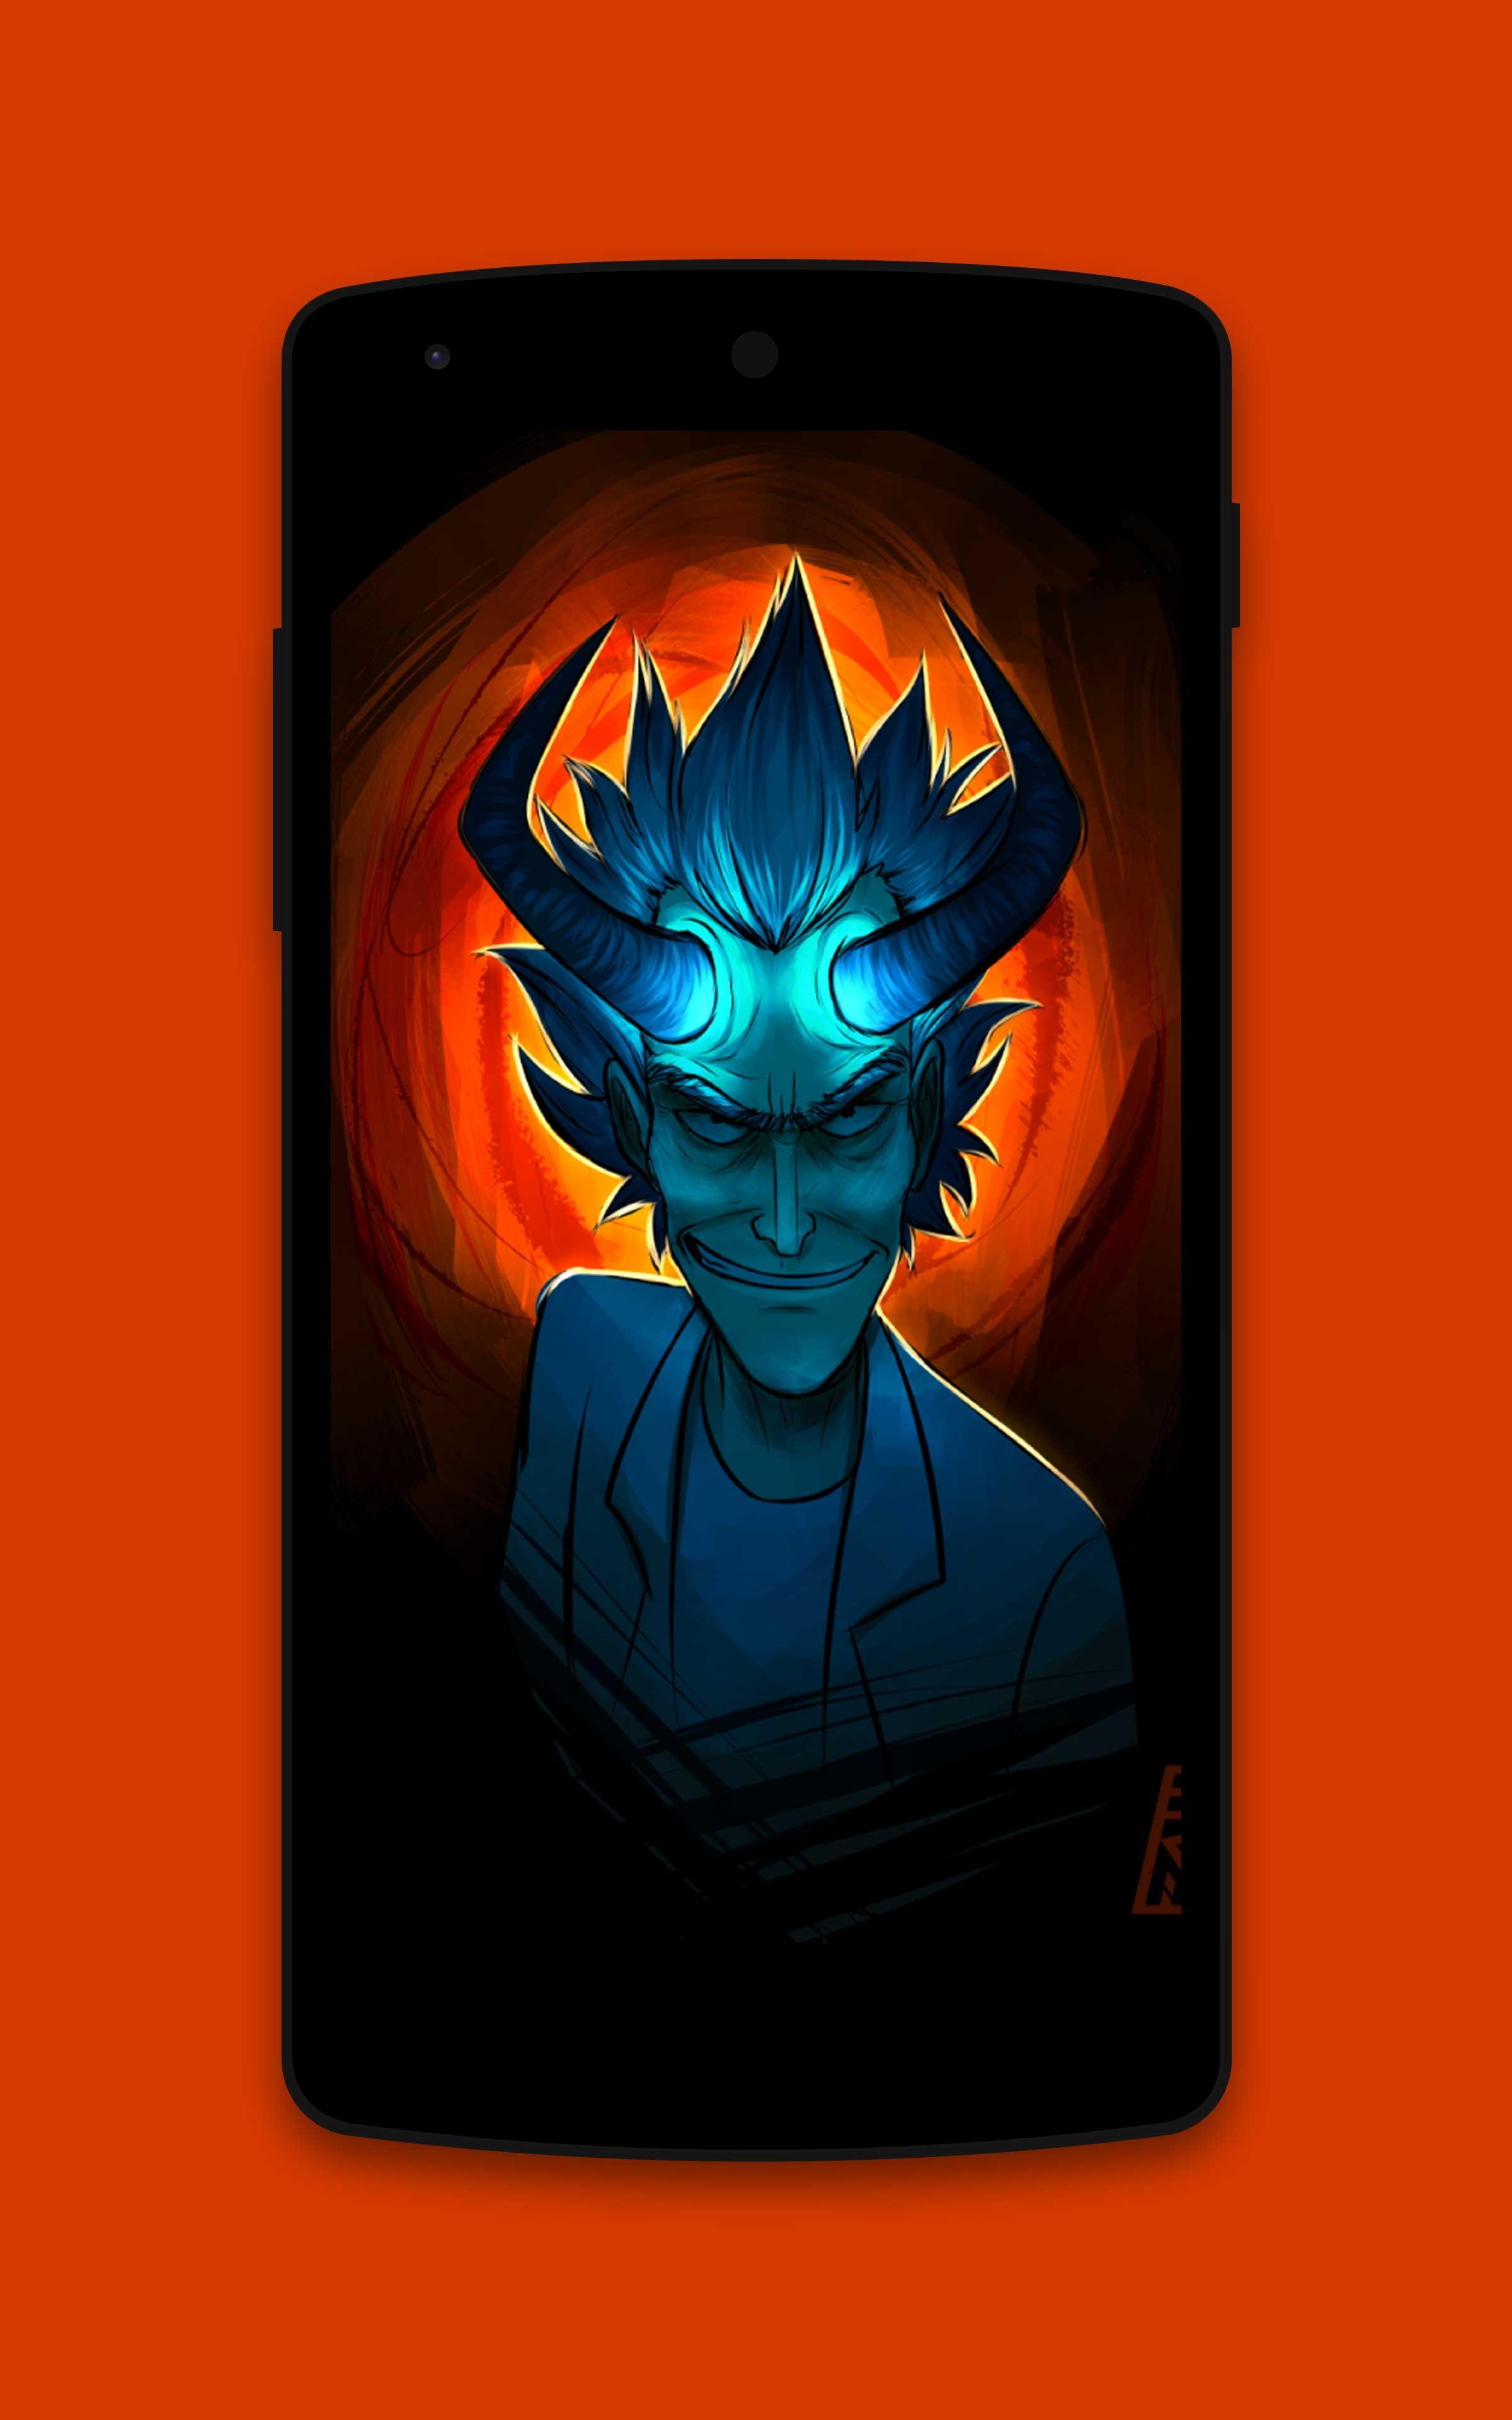 New Rick Sanchez Wallpaper Hd For Android Apk Download